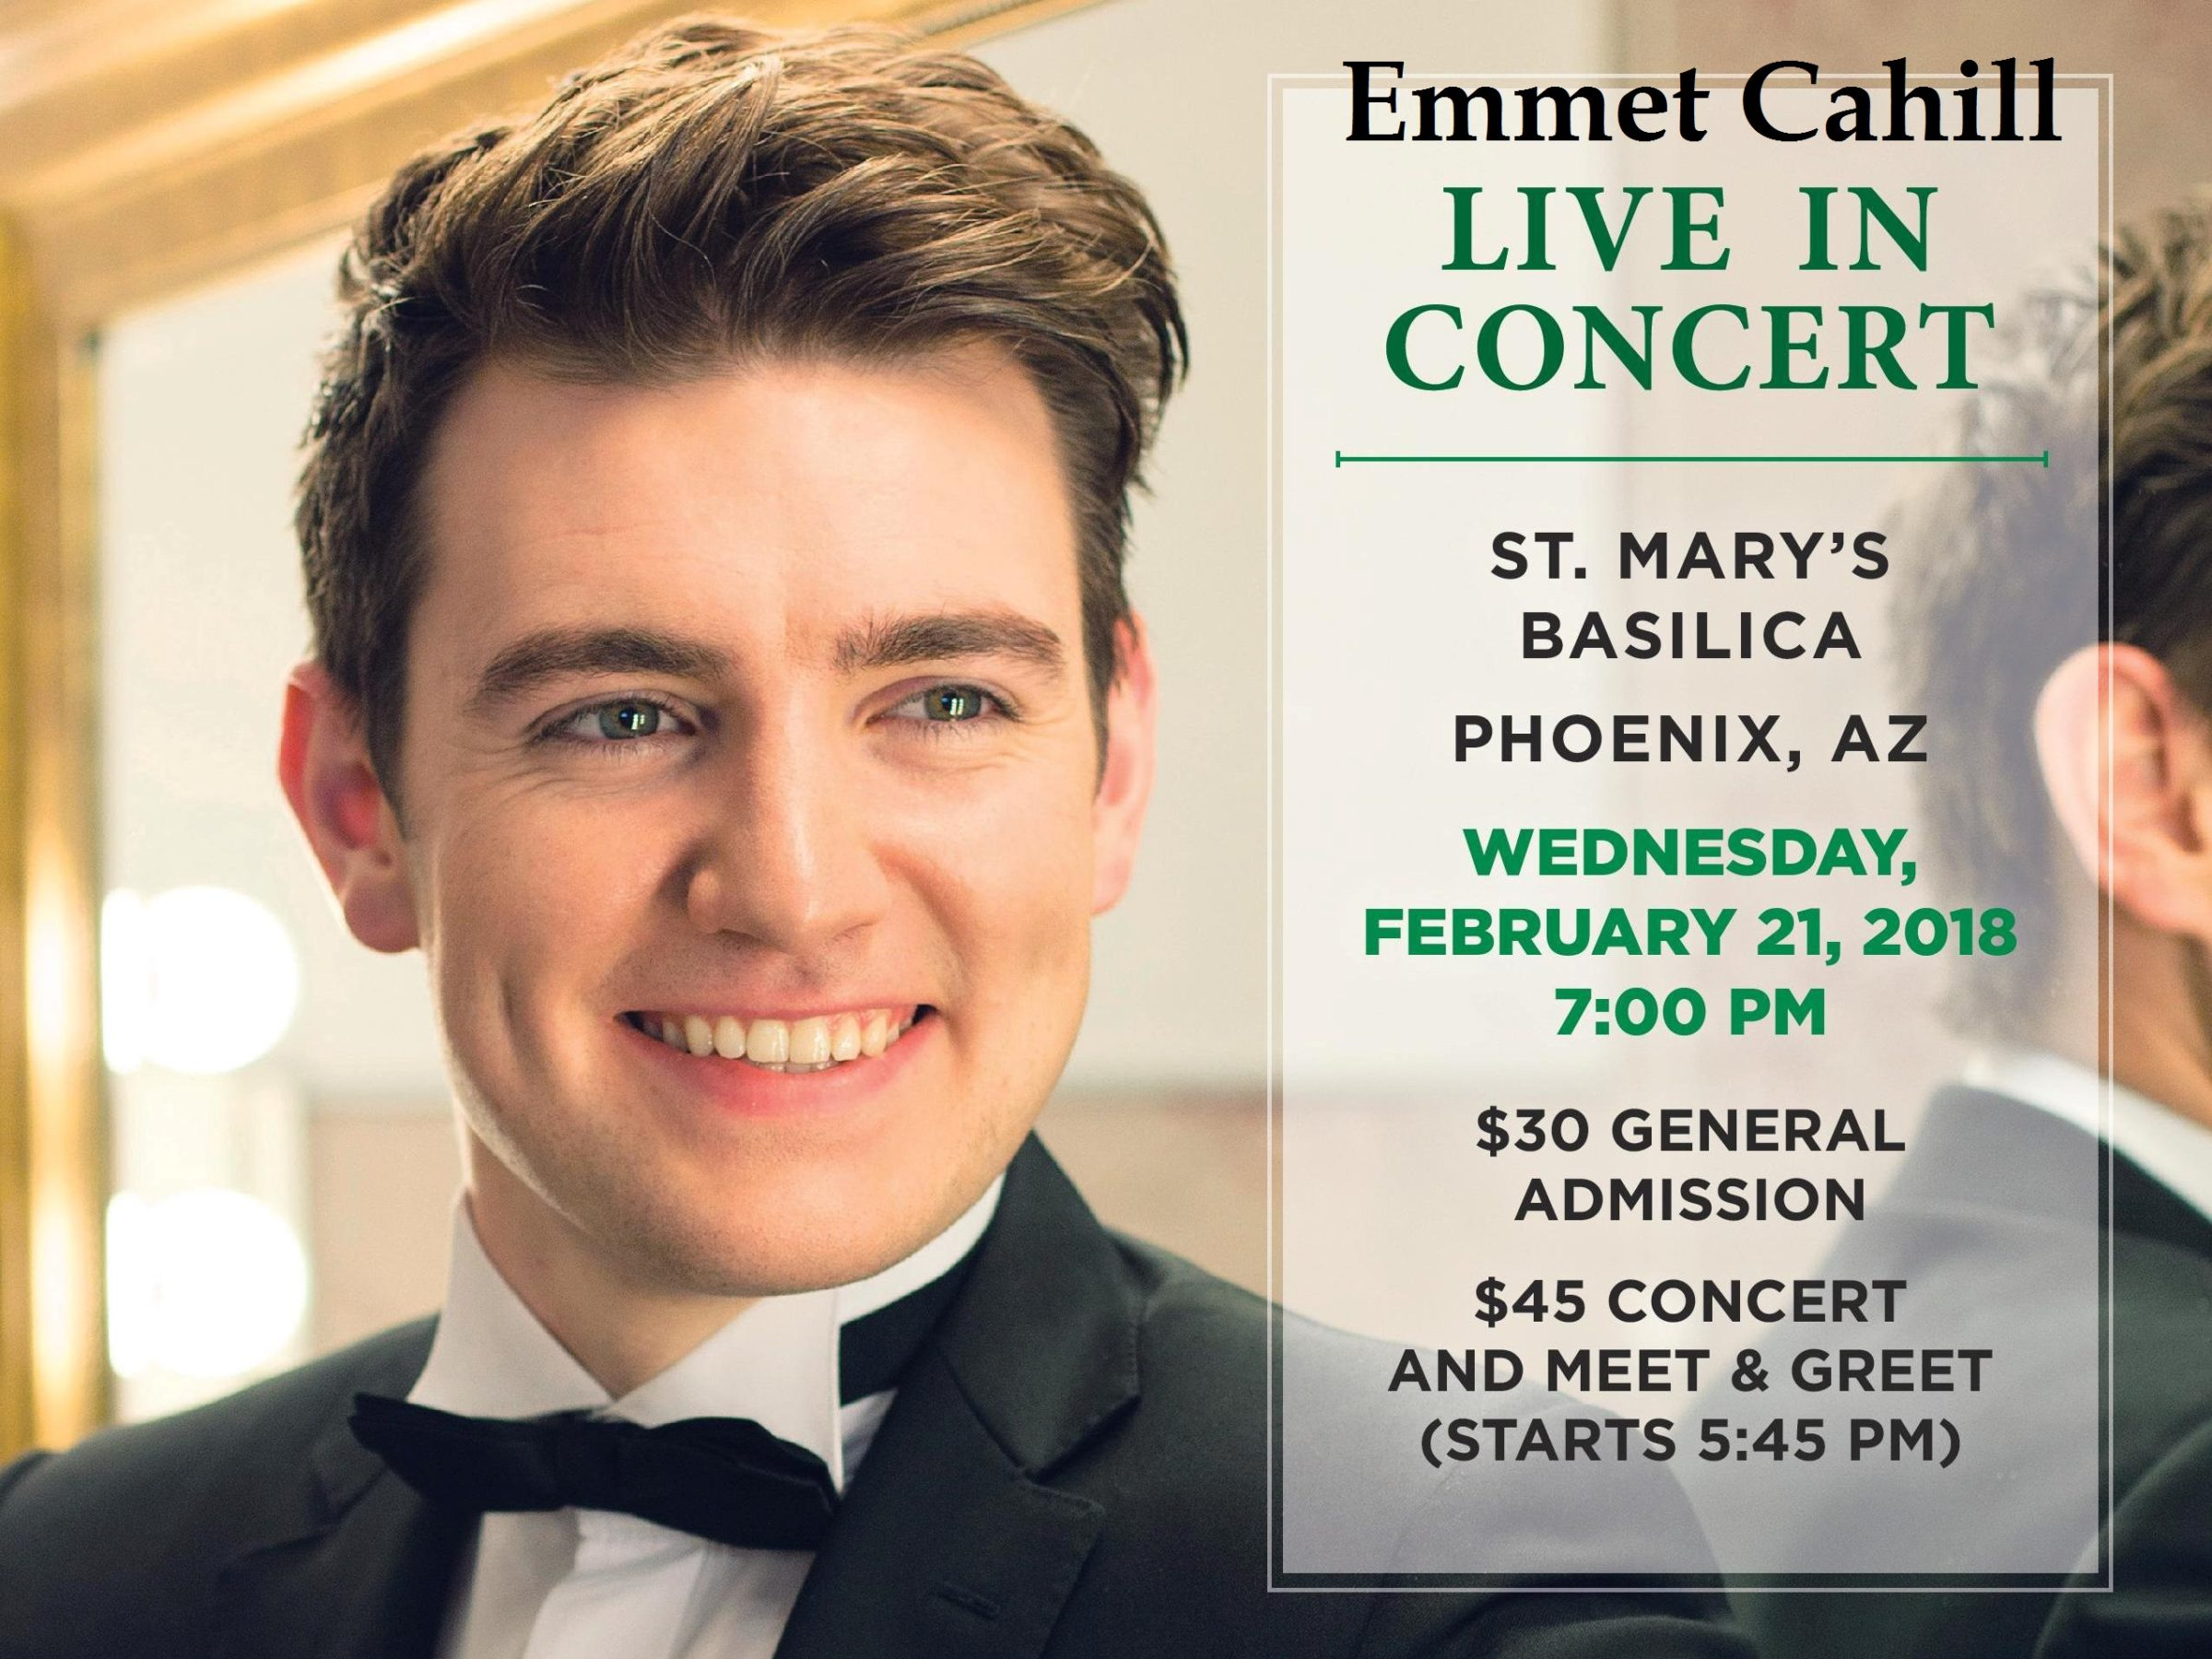 Emmet cahill concert st marys basilica ireland most exciting young tenor emmet cahill a well known member of celtic thunder is back on a nationwide tour of the united states m4hsunfo